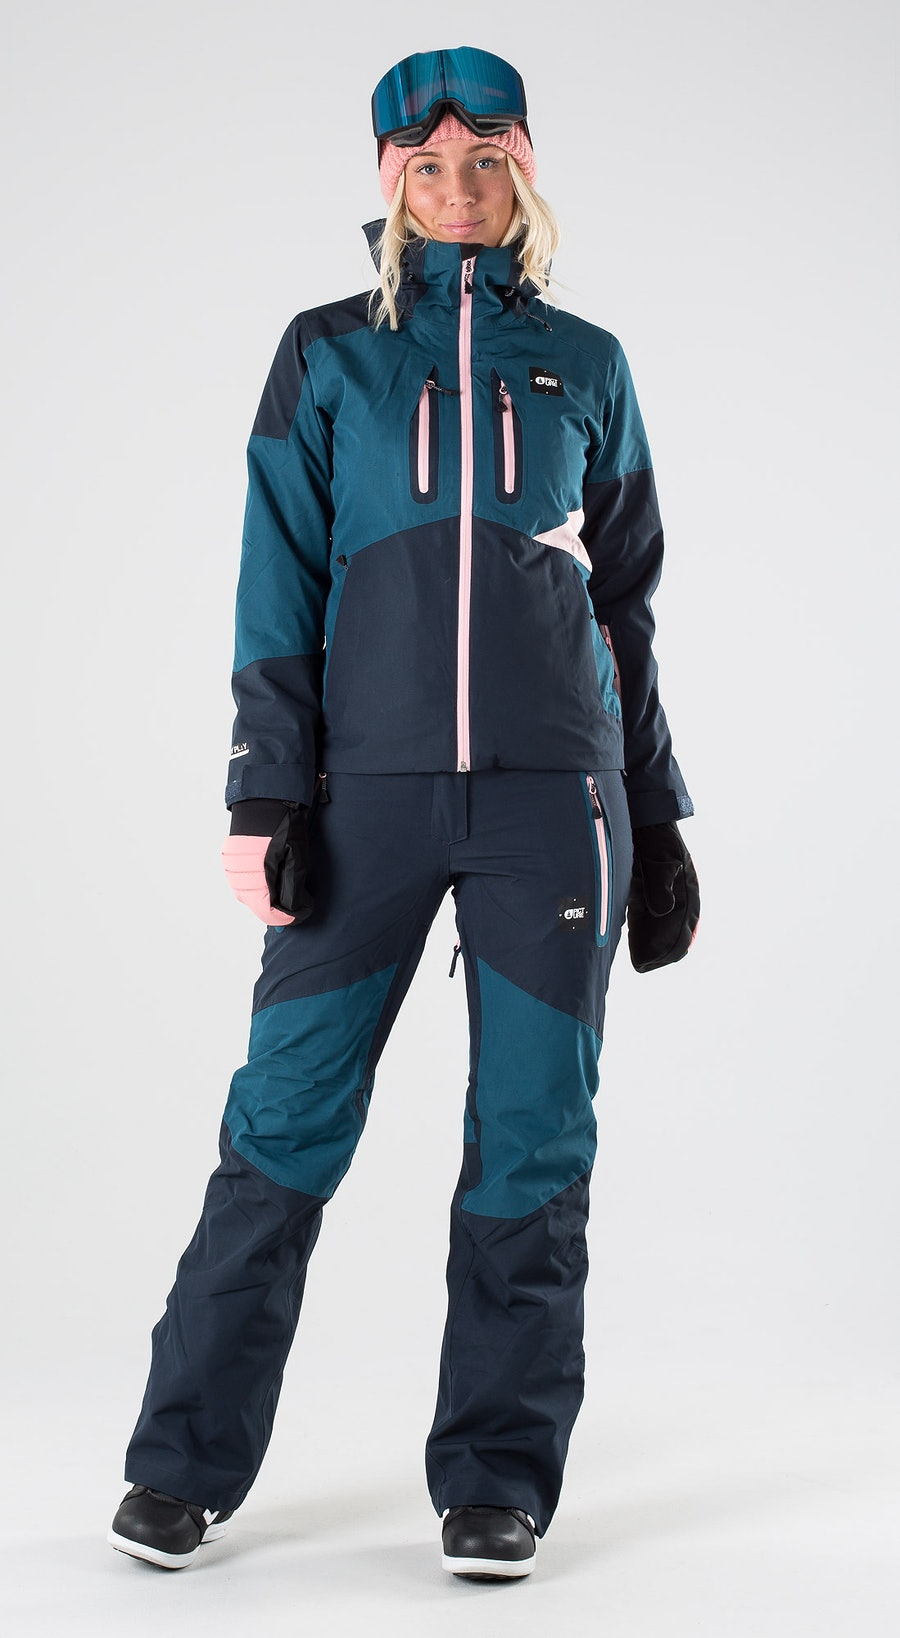 Picture Seen Dark Blue Snowboard clothing Multi